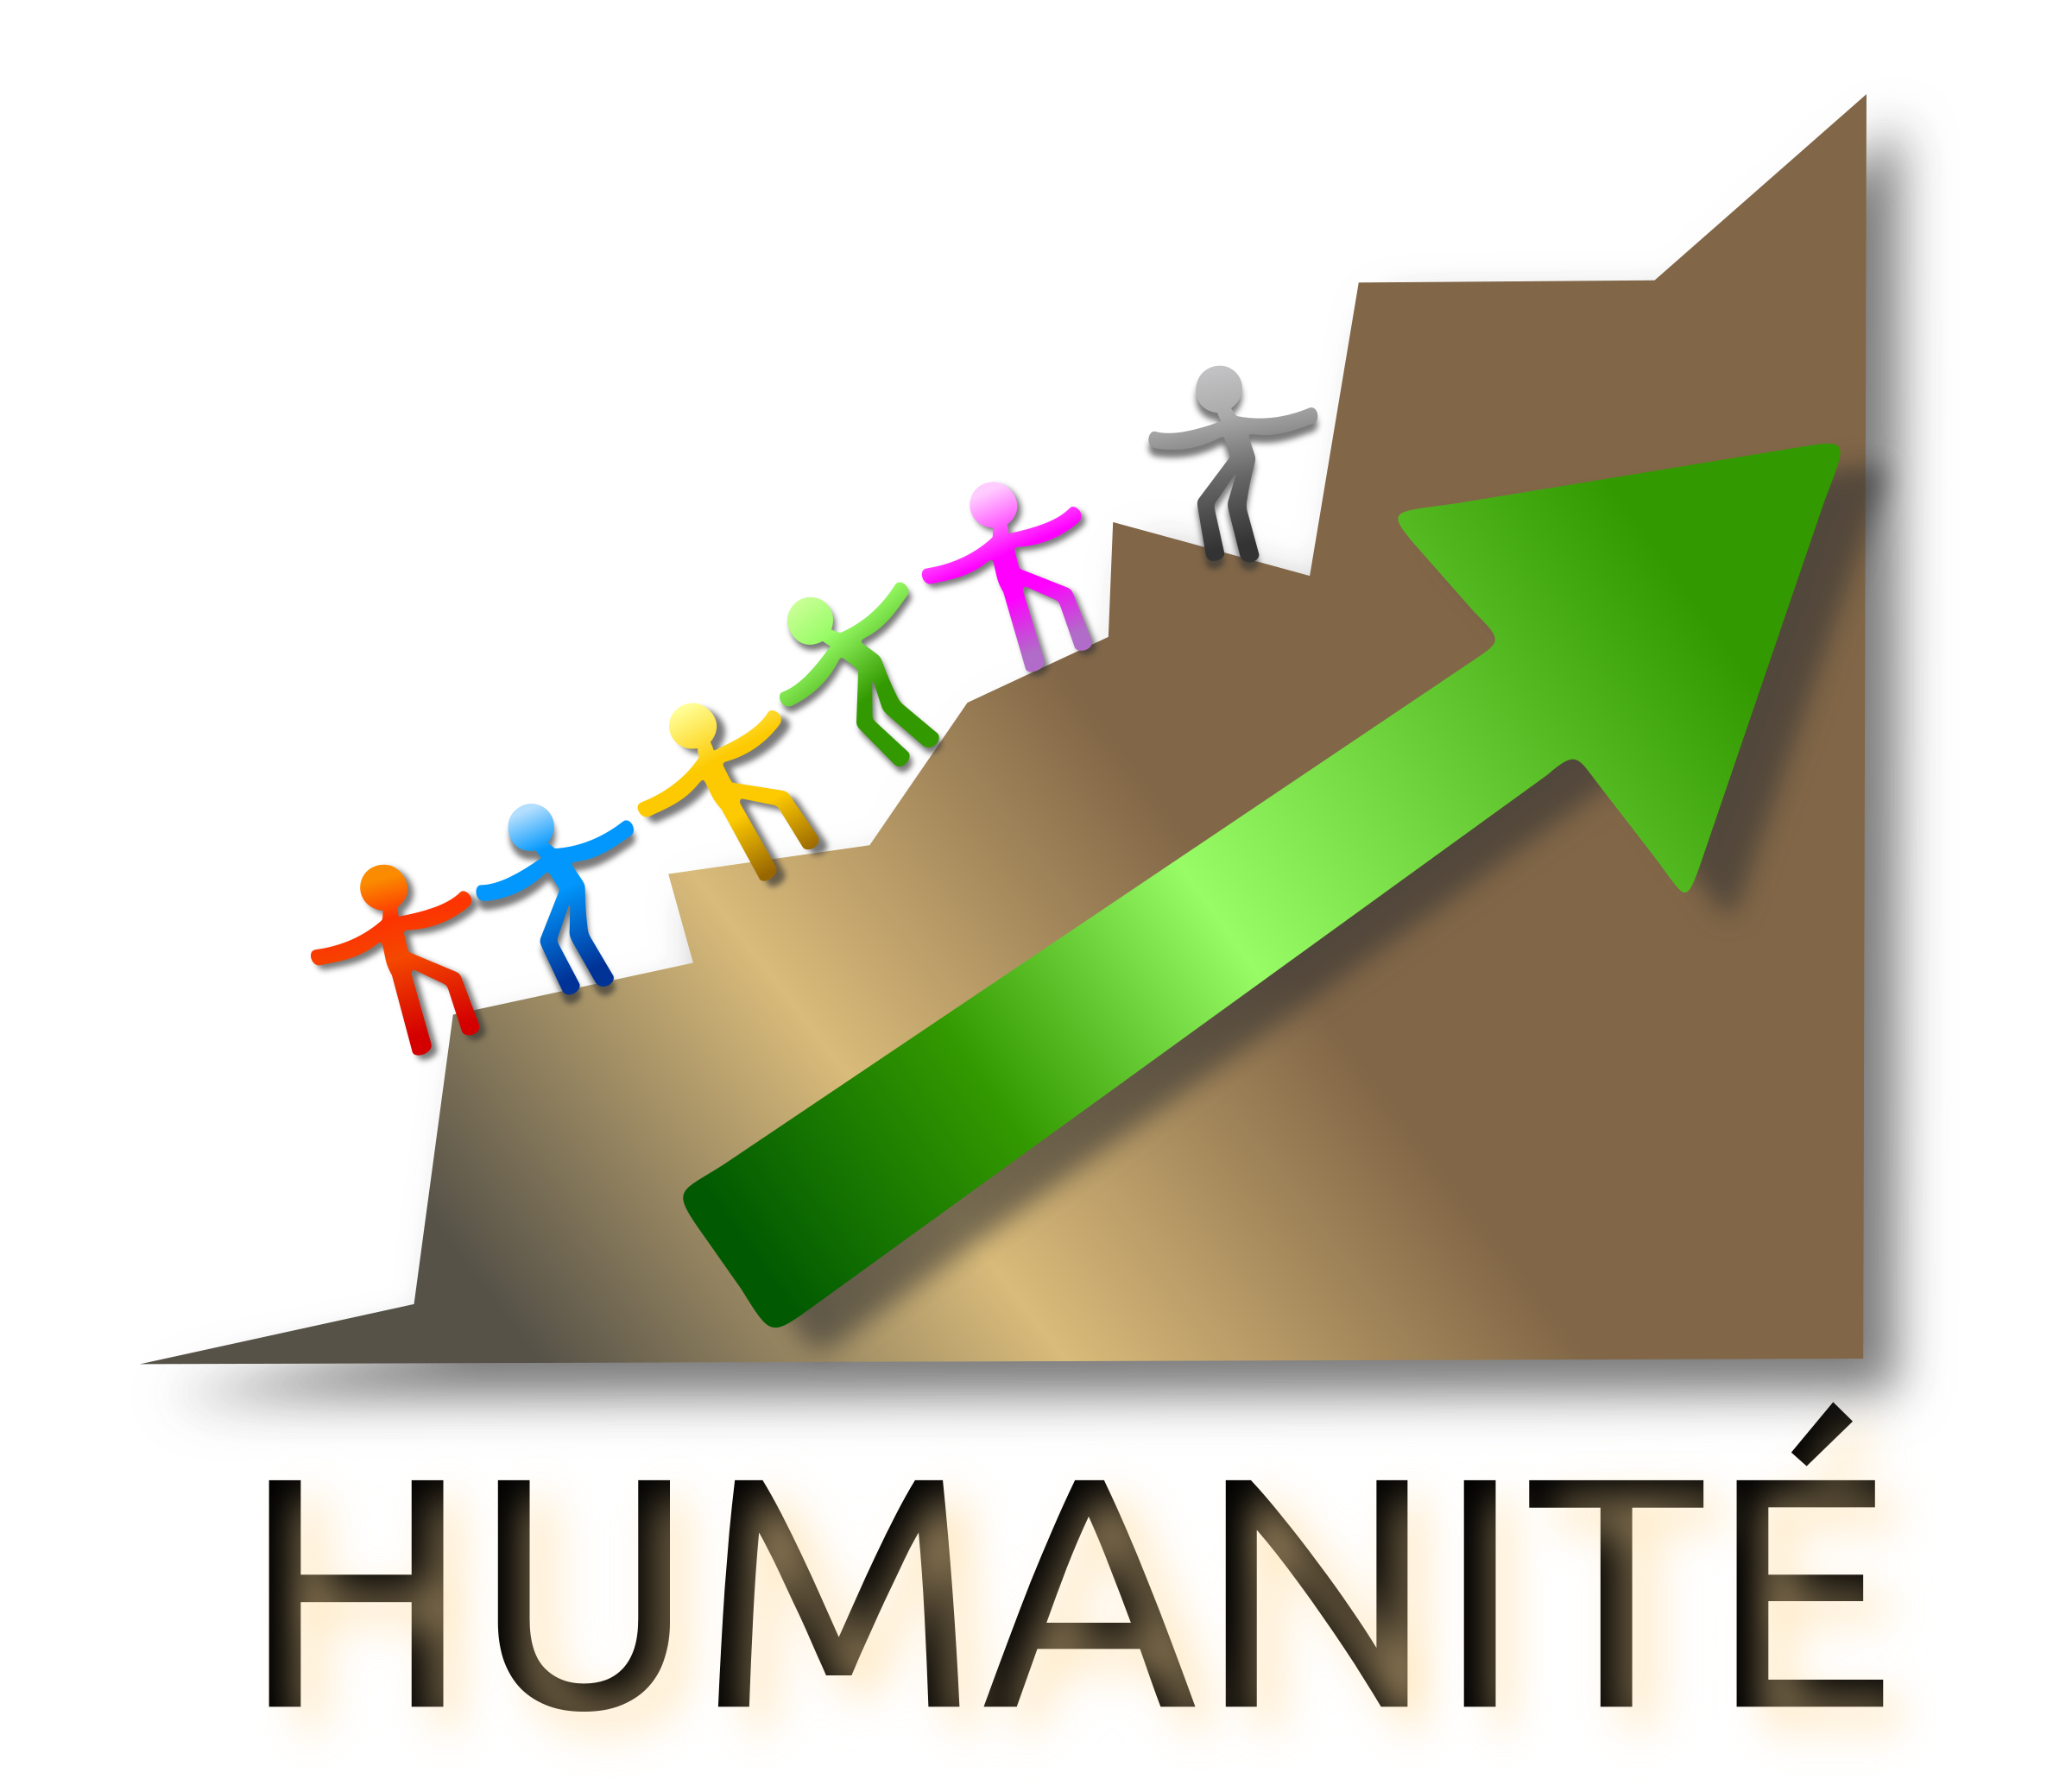 Humanite by Merlin2525